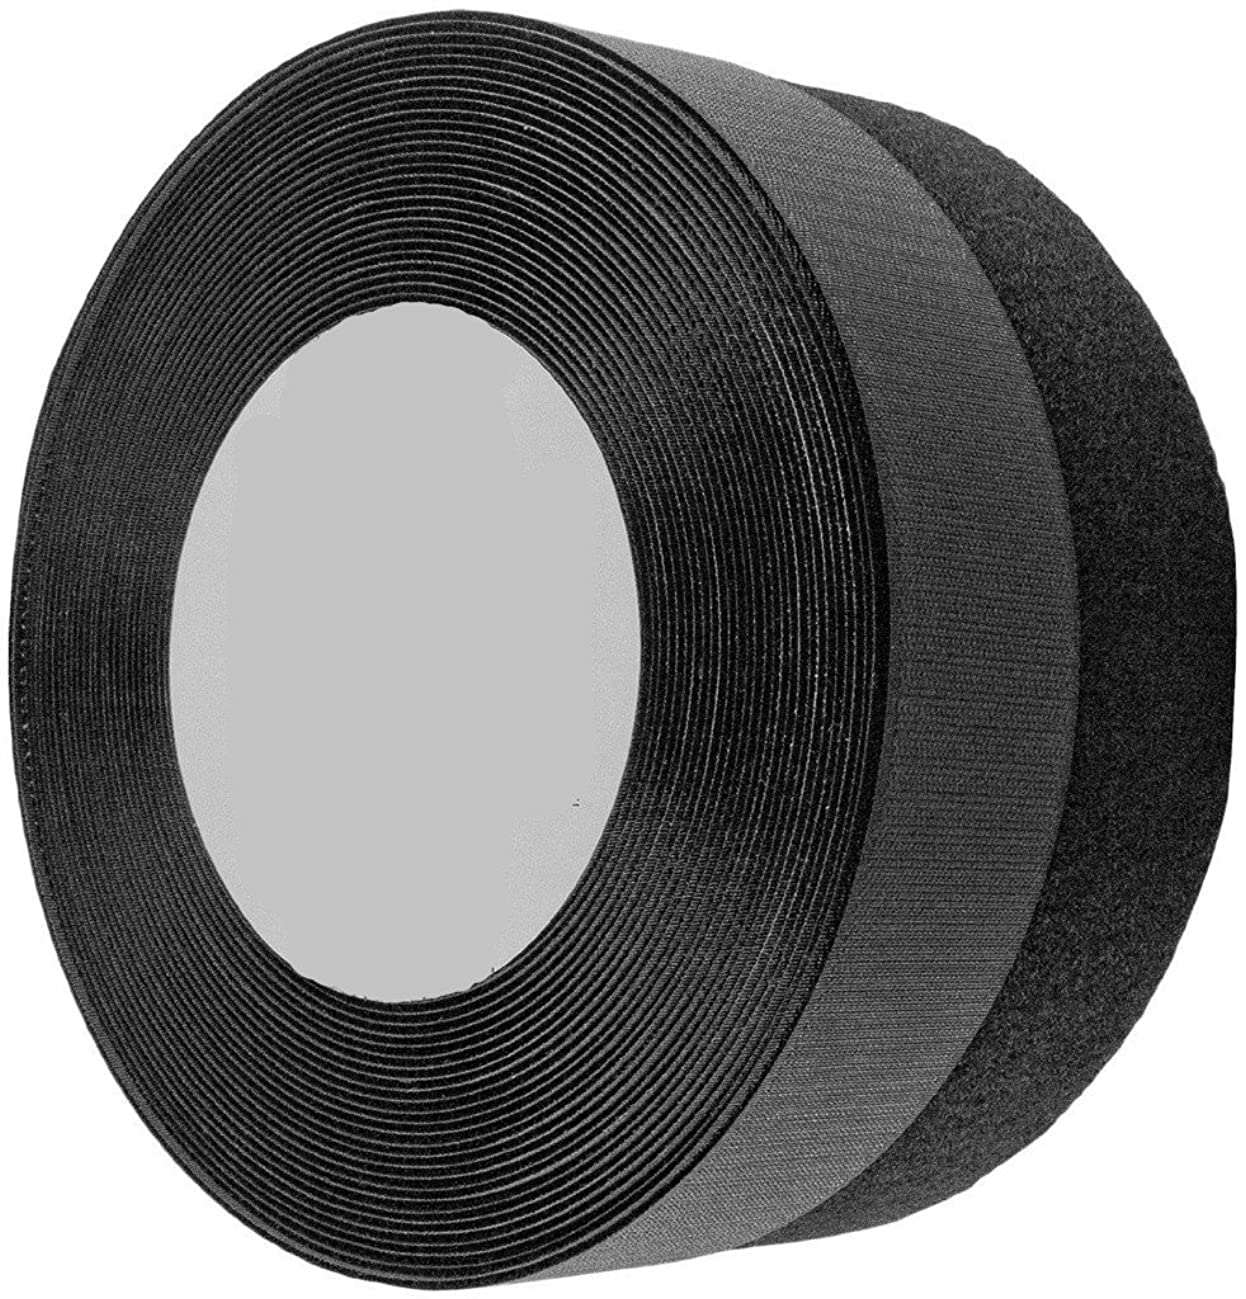 wish you have a nice day 1.5 Inches Black Sew on Hook and Loop Fastener Sew (1.5inch, 10 Yards)